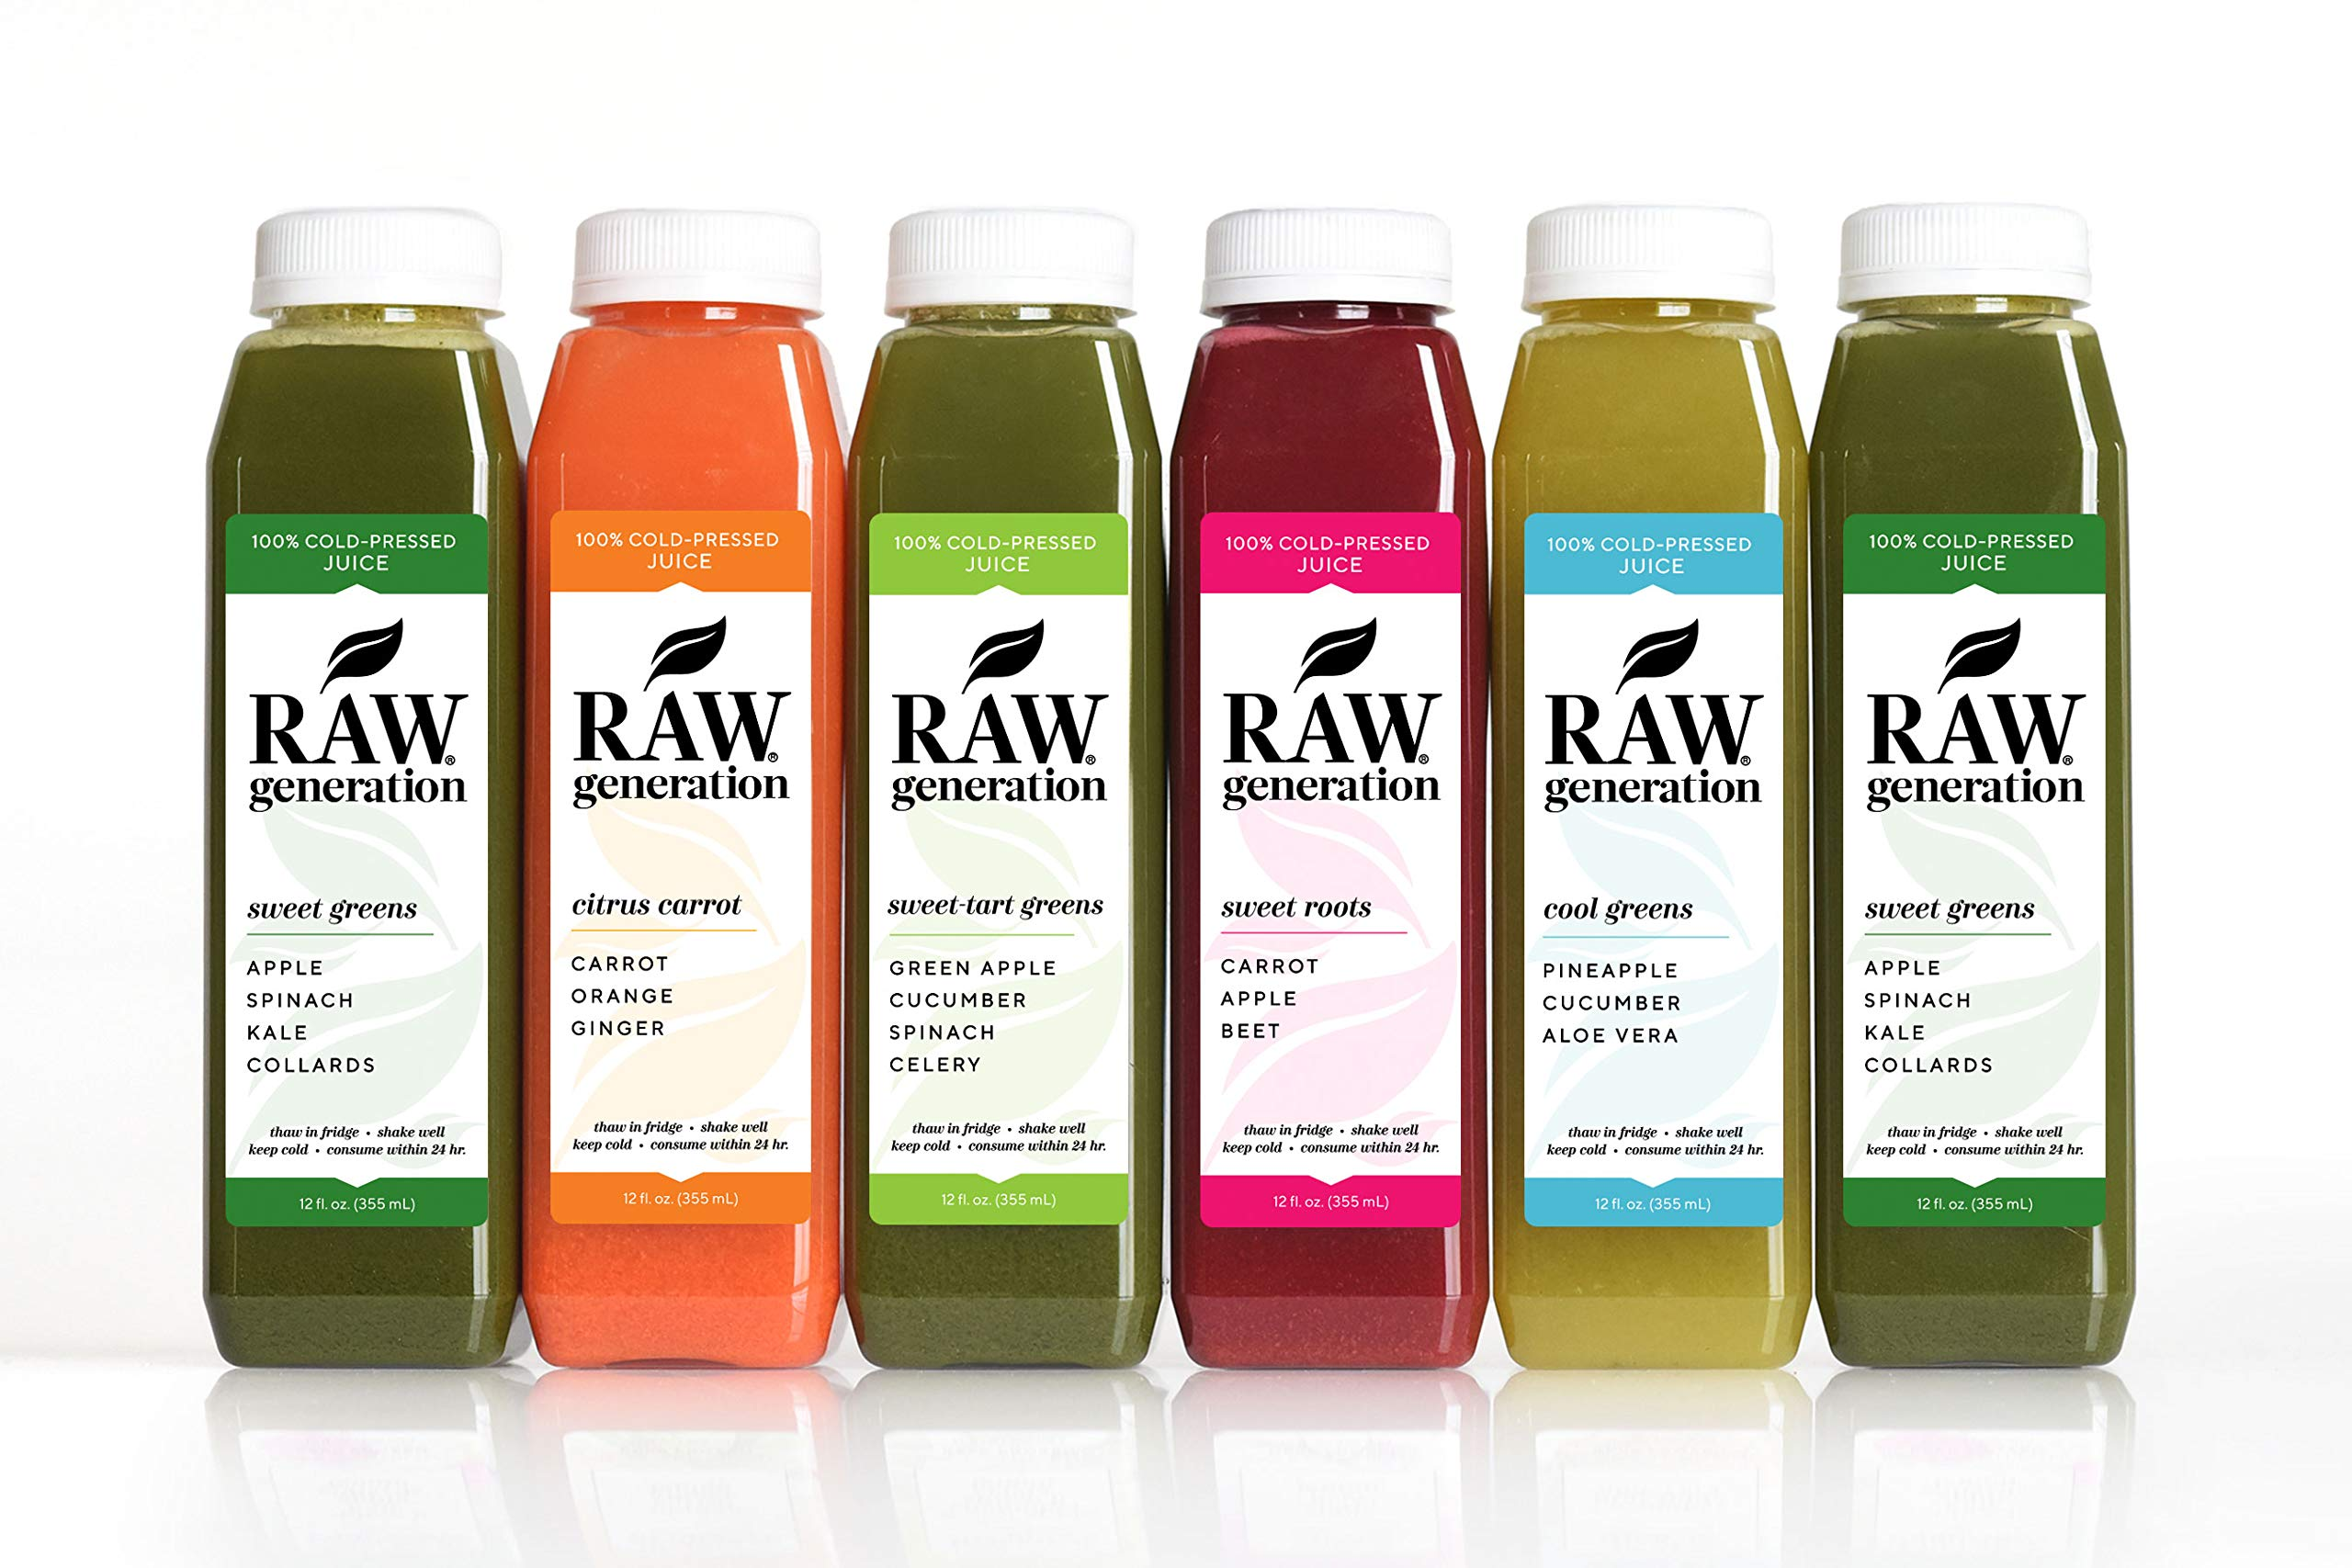 5-Day Skinny Cleanse by Raw Generation® - Best Juice Cleanse to Lose Weight Quickly/Healthiest Way to Cleanse & Detoxify Your Body/Jumpstart a Healthier Diet by RAW generation